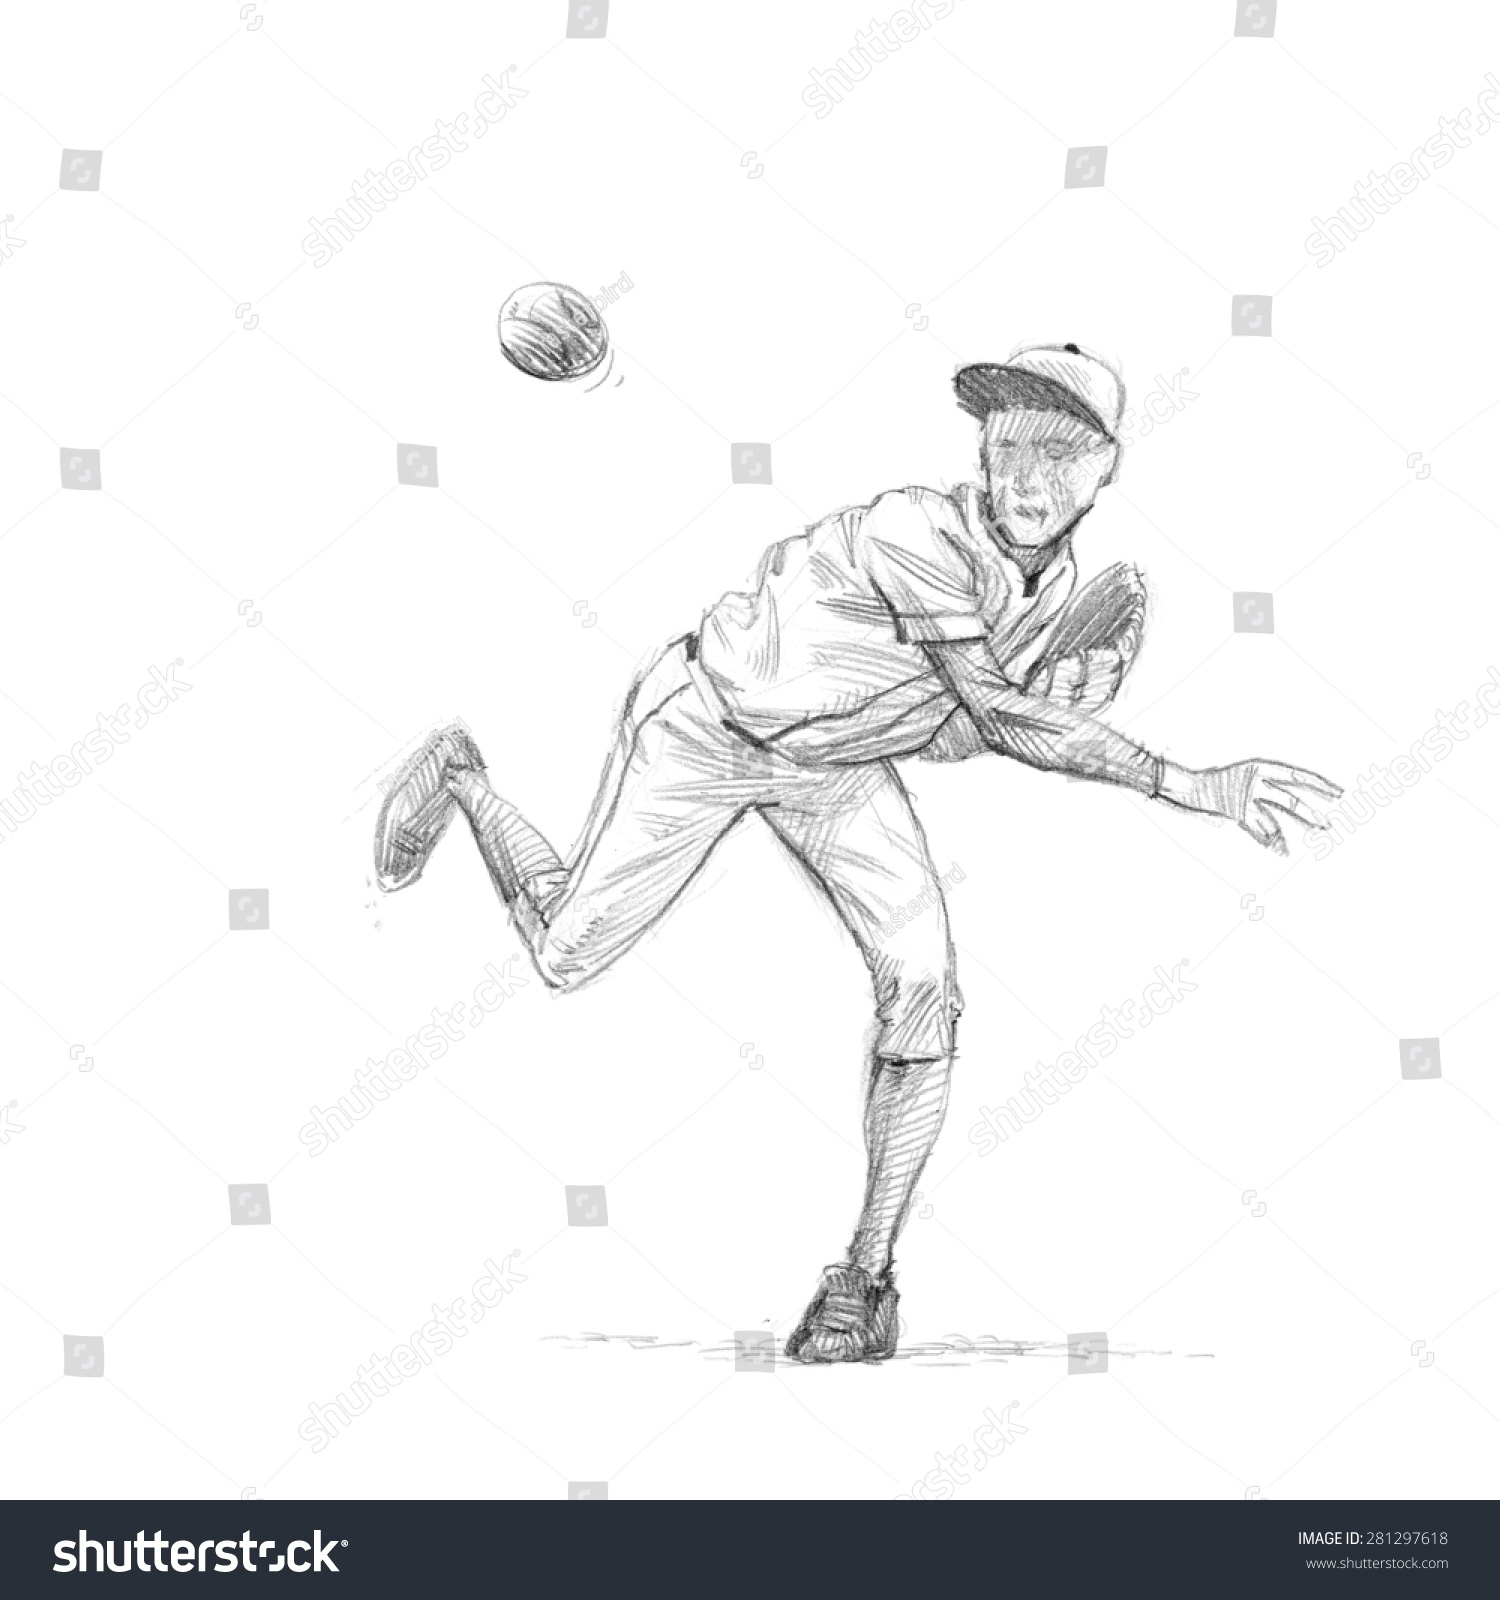 Uncategorized How To Draw A Baseball Pitcher sports series sketchy pencil drawing baseball stock illustration of a player pitcher high resolution scan